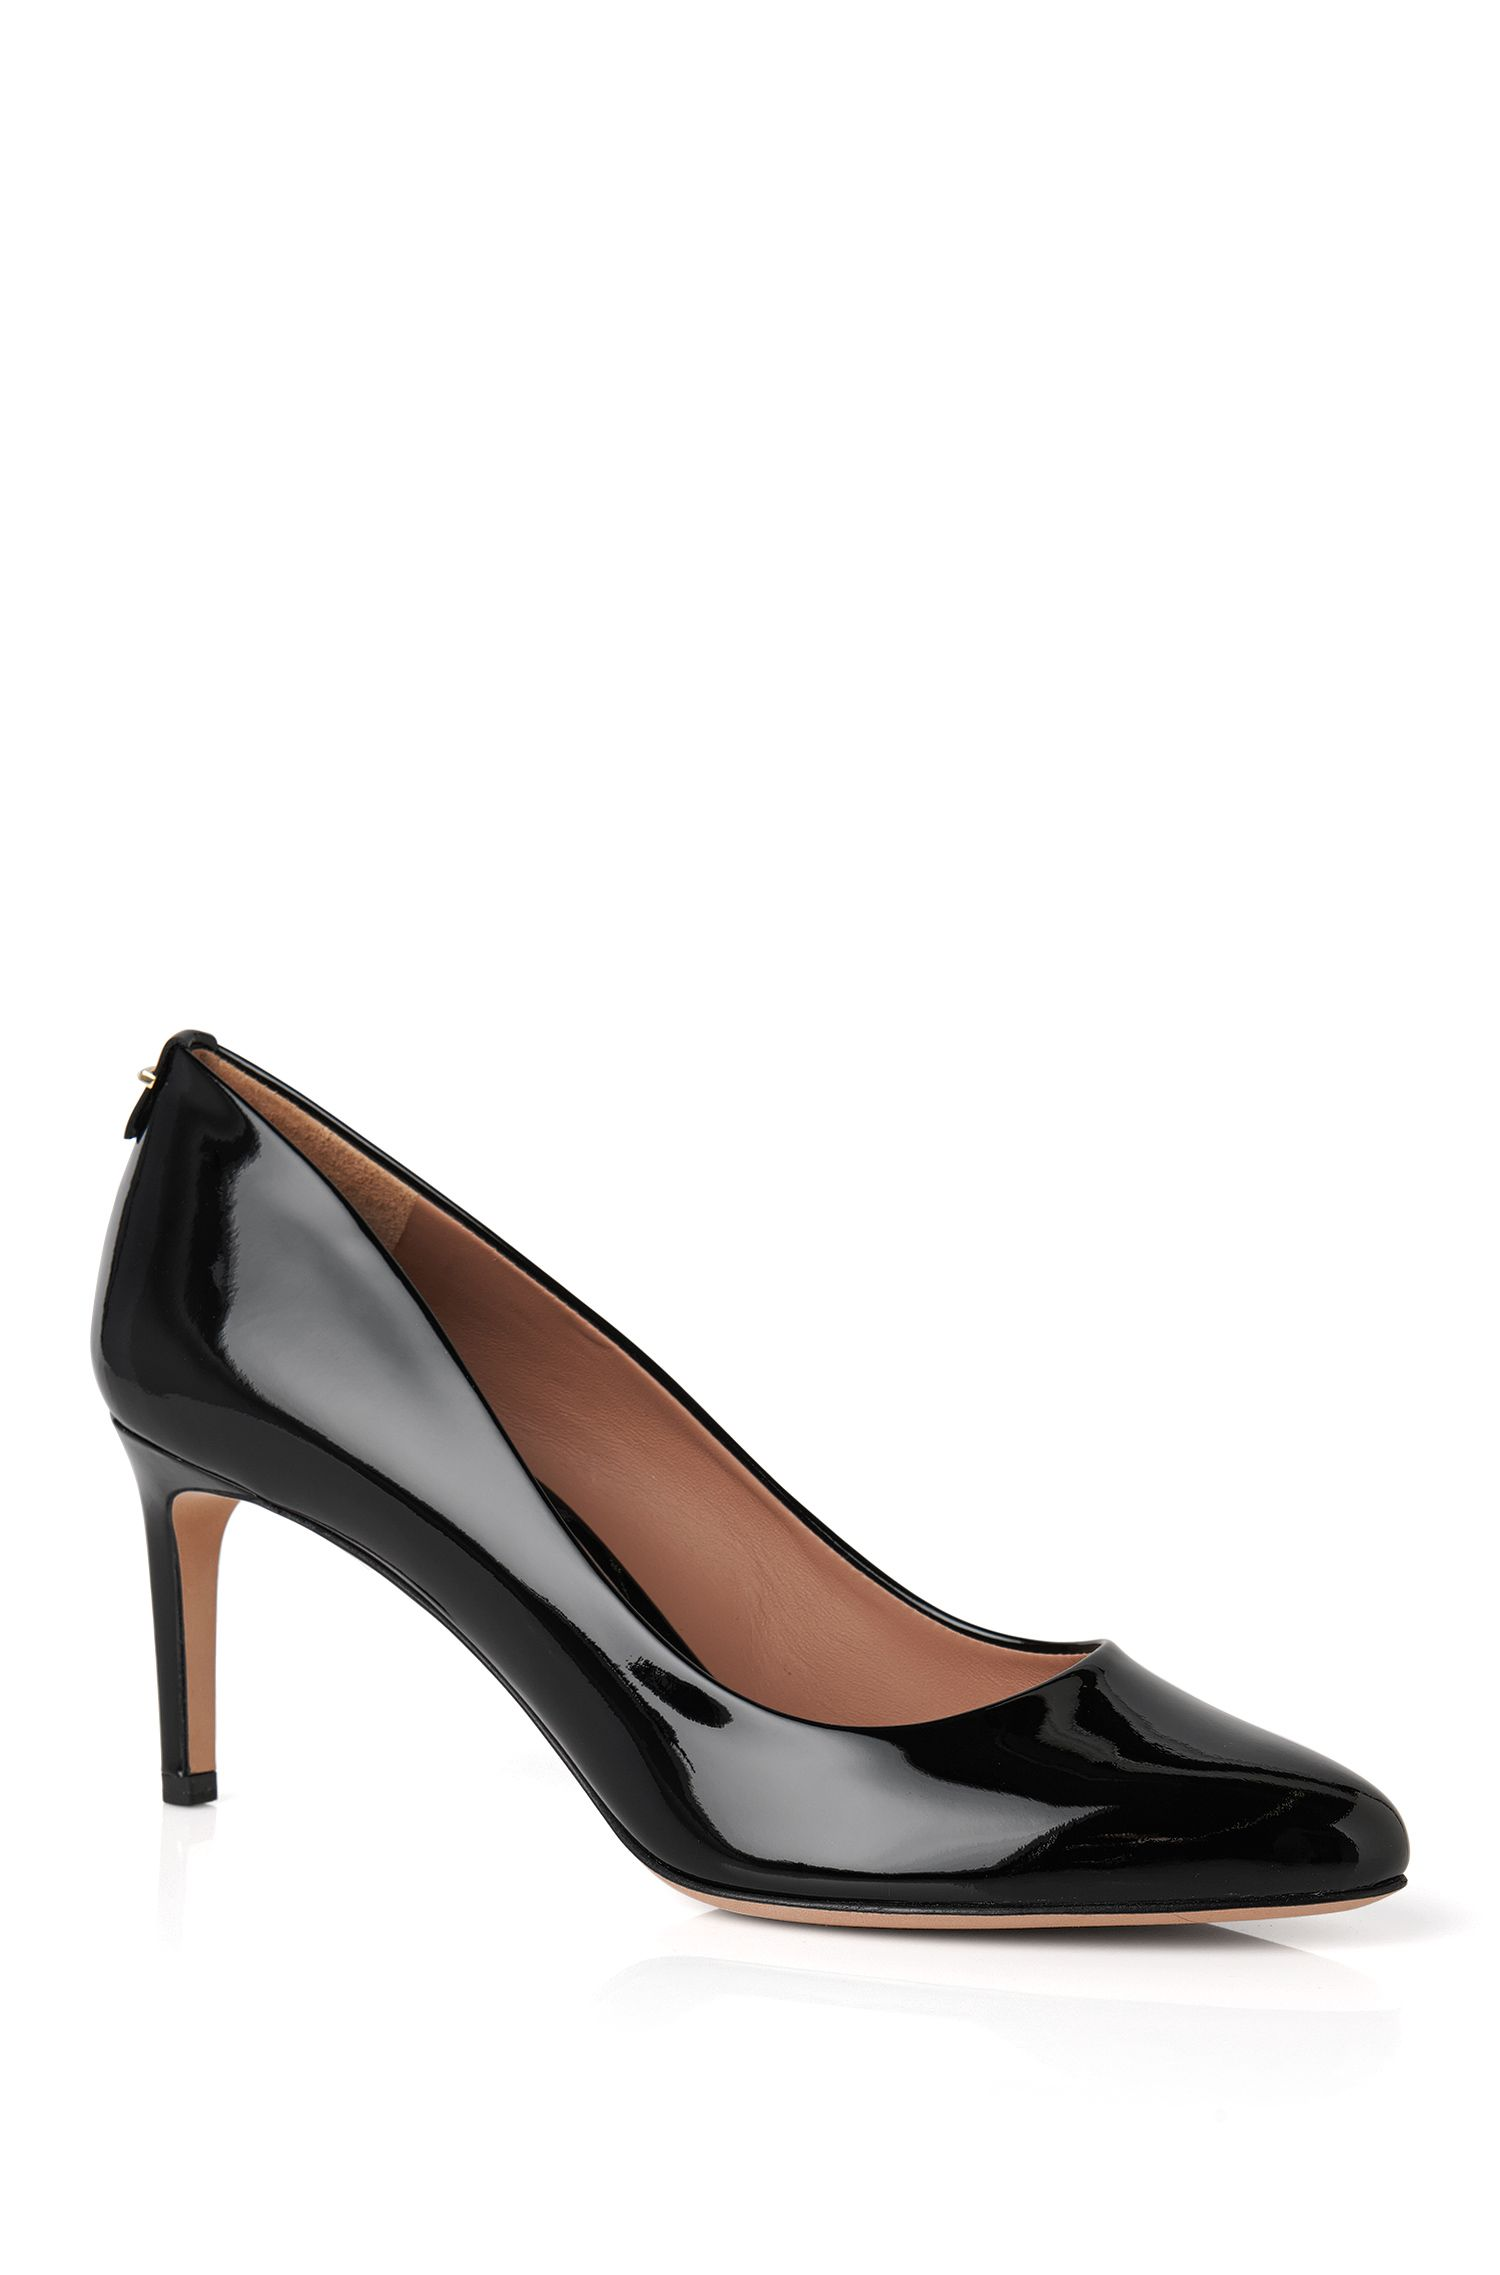 BOSS Luxury Staple pumps in Italian patent leather